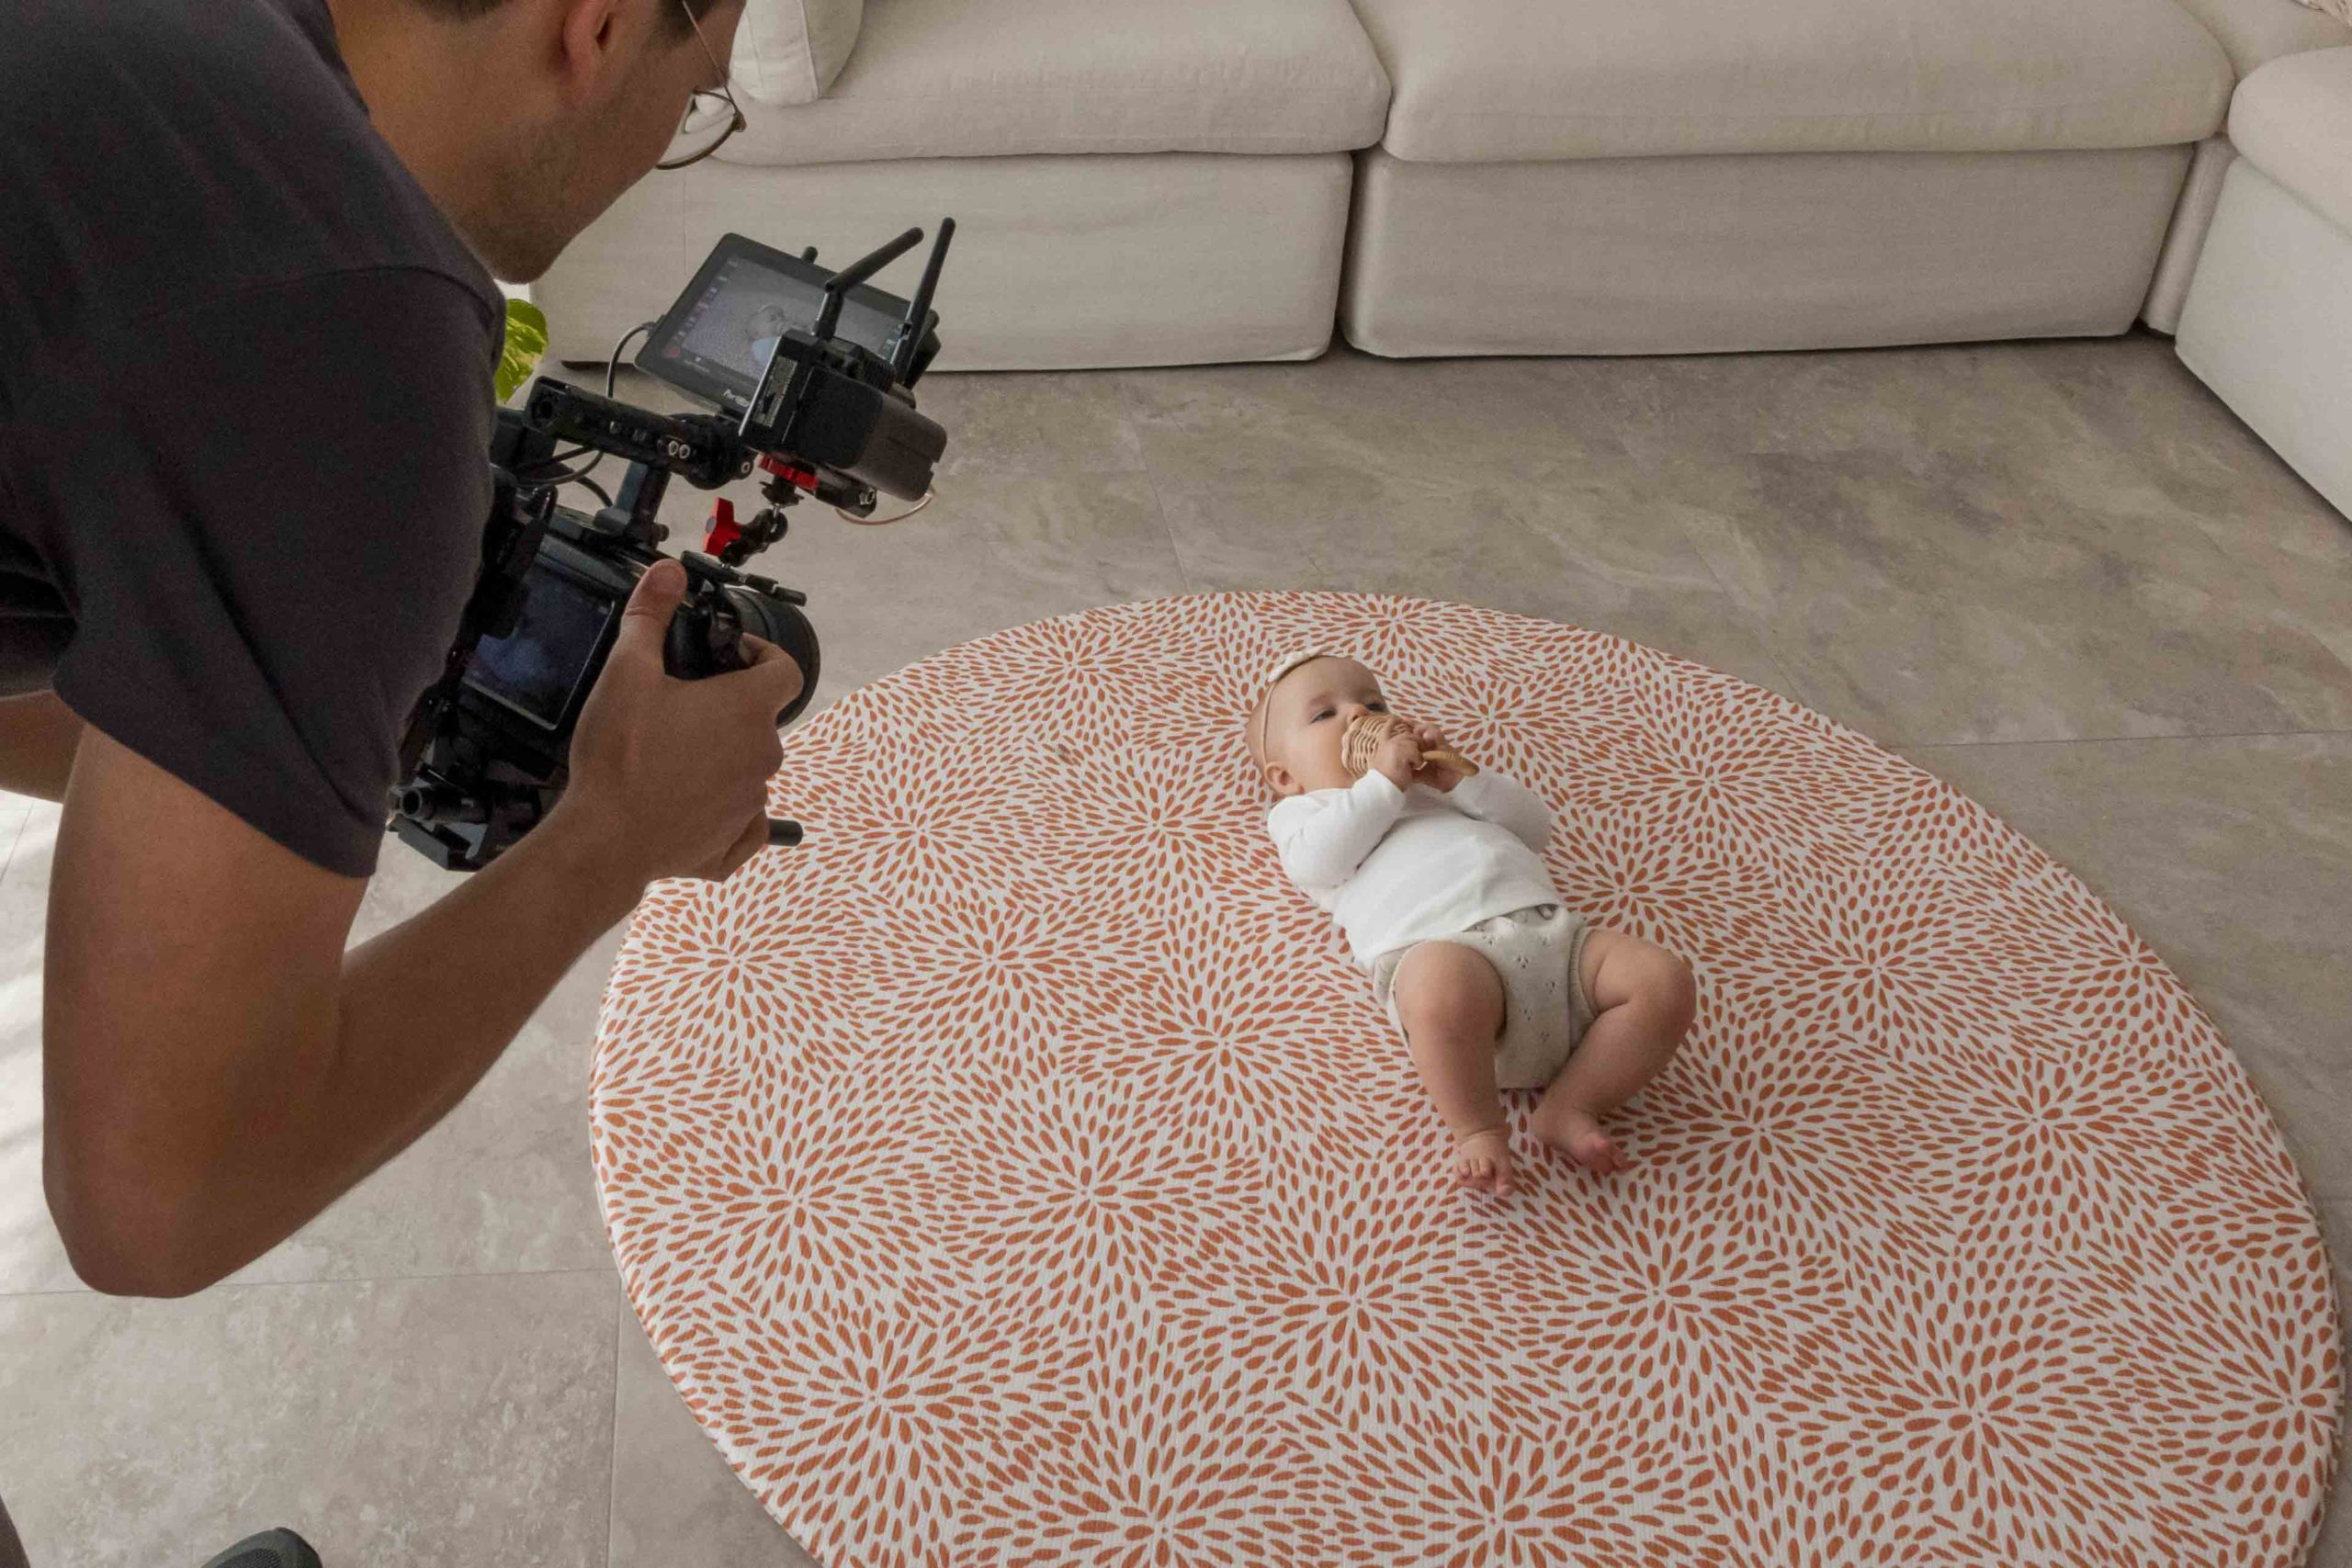 Baby on a Luxe at Plays mat while AOV Films is filming